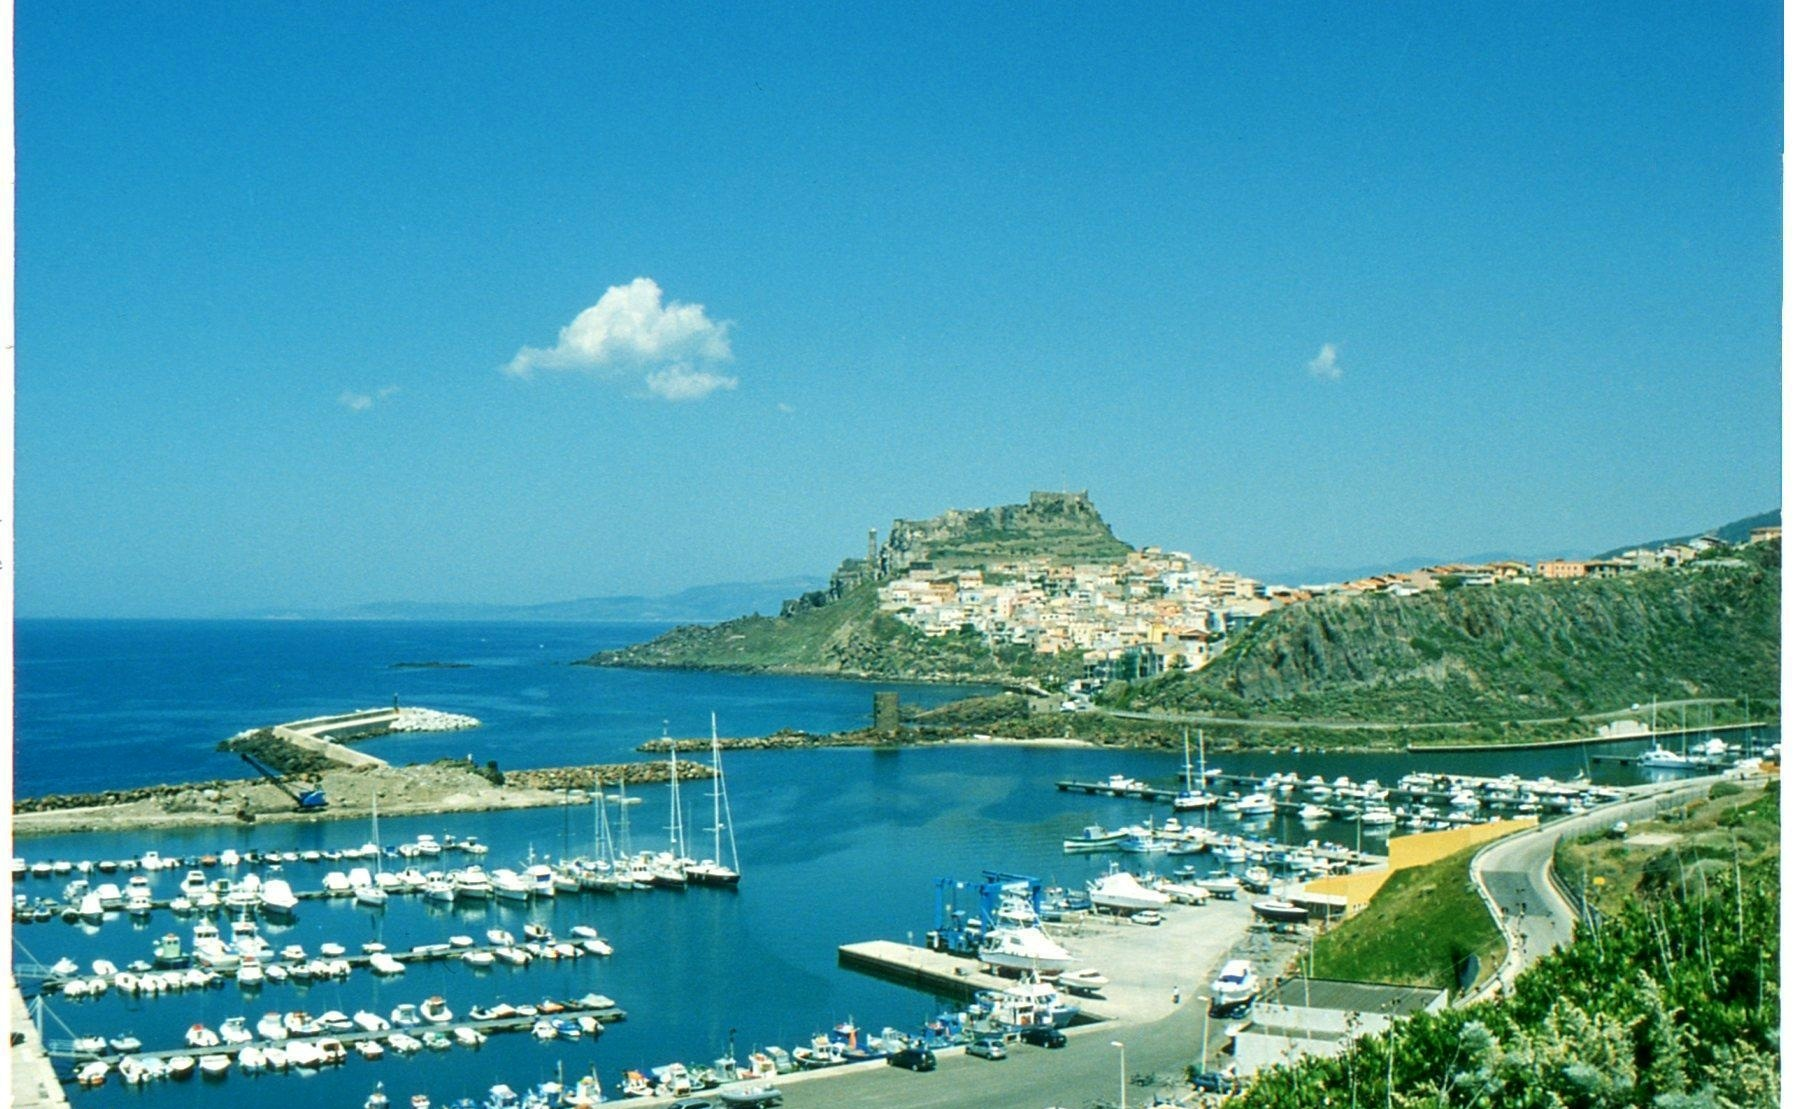 Castelsardo Italy  city photos gallery : The town of Castelsardo in Sardinia, Italy Wikimedia ...